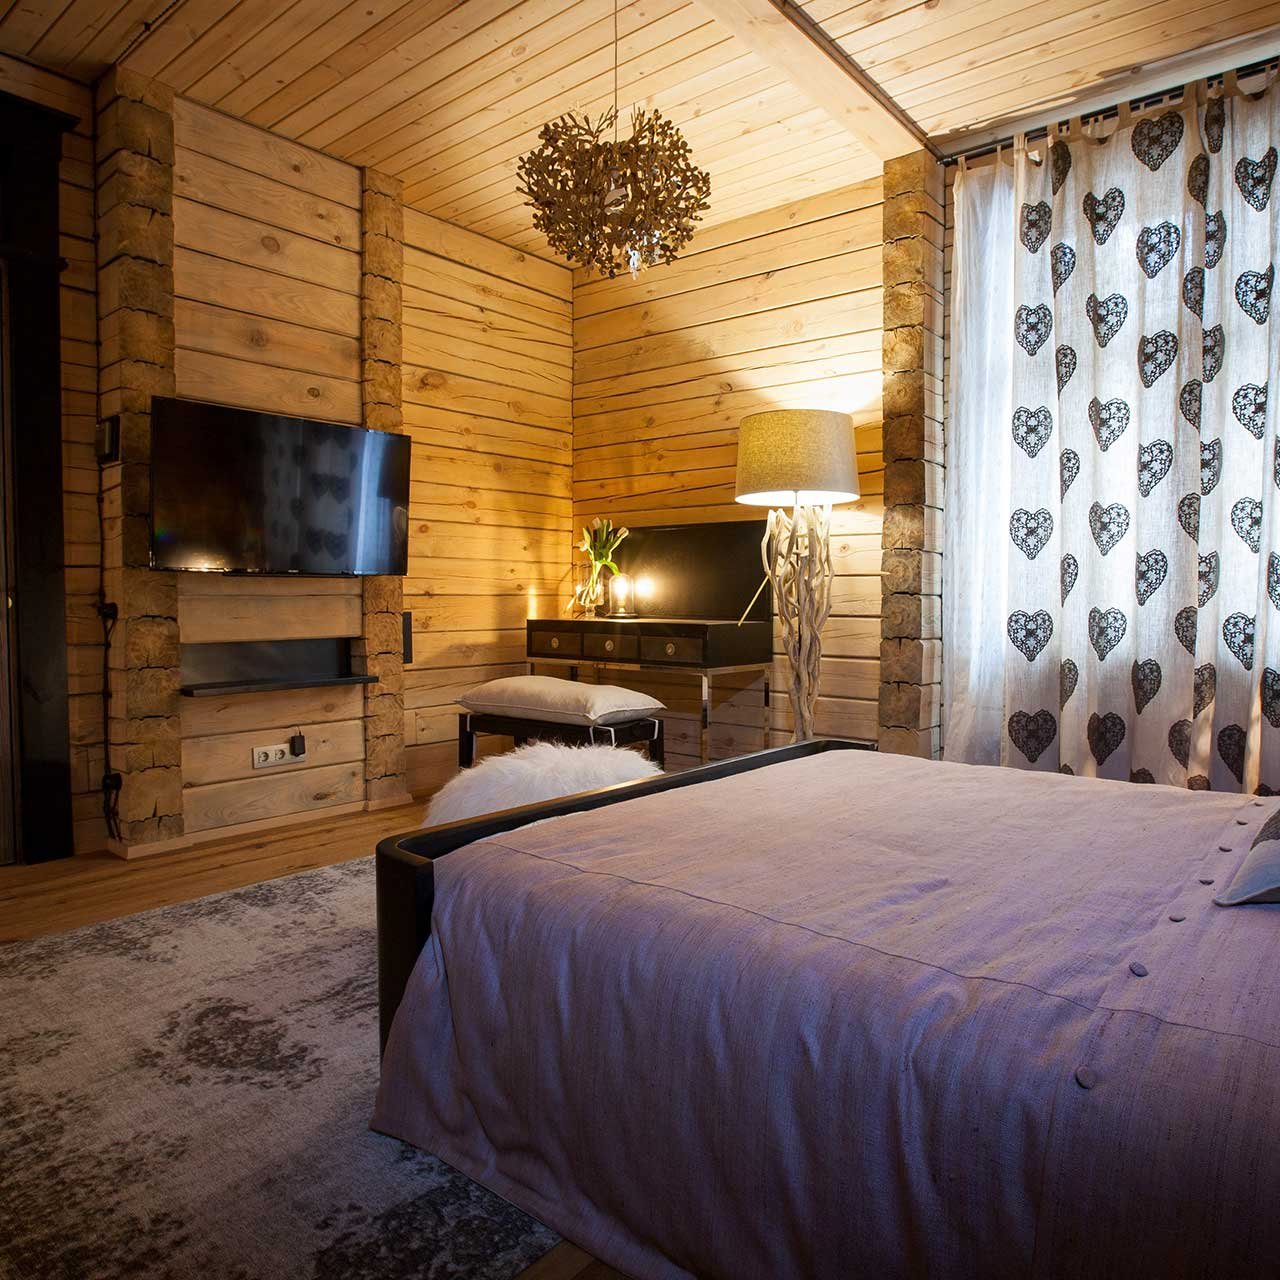 rustic style bedroom decor with sentimental highlights